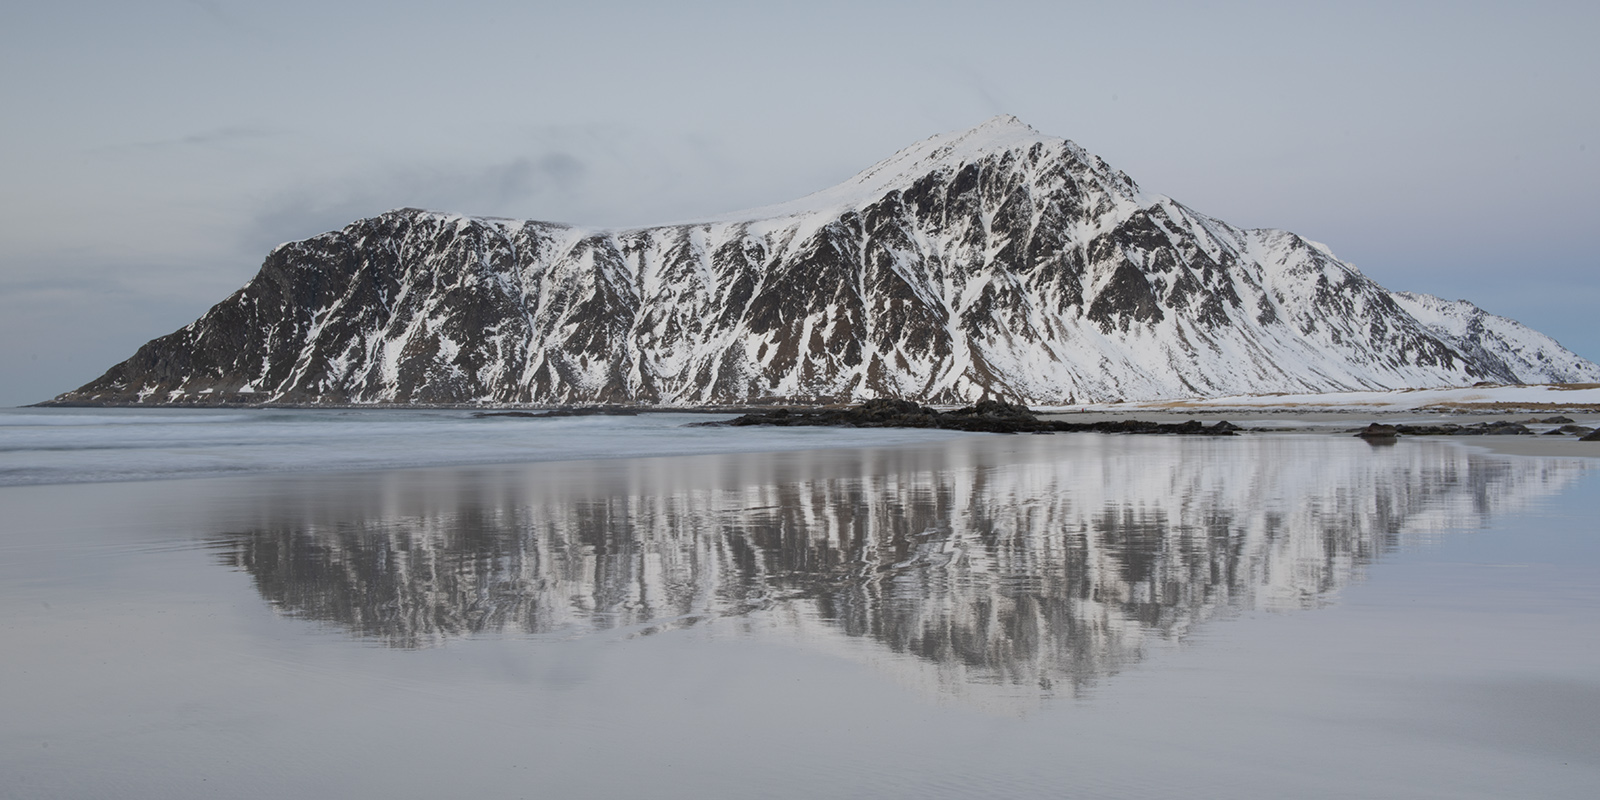 The mighty Hustinden reflects on Skagsanden beach at low tide